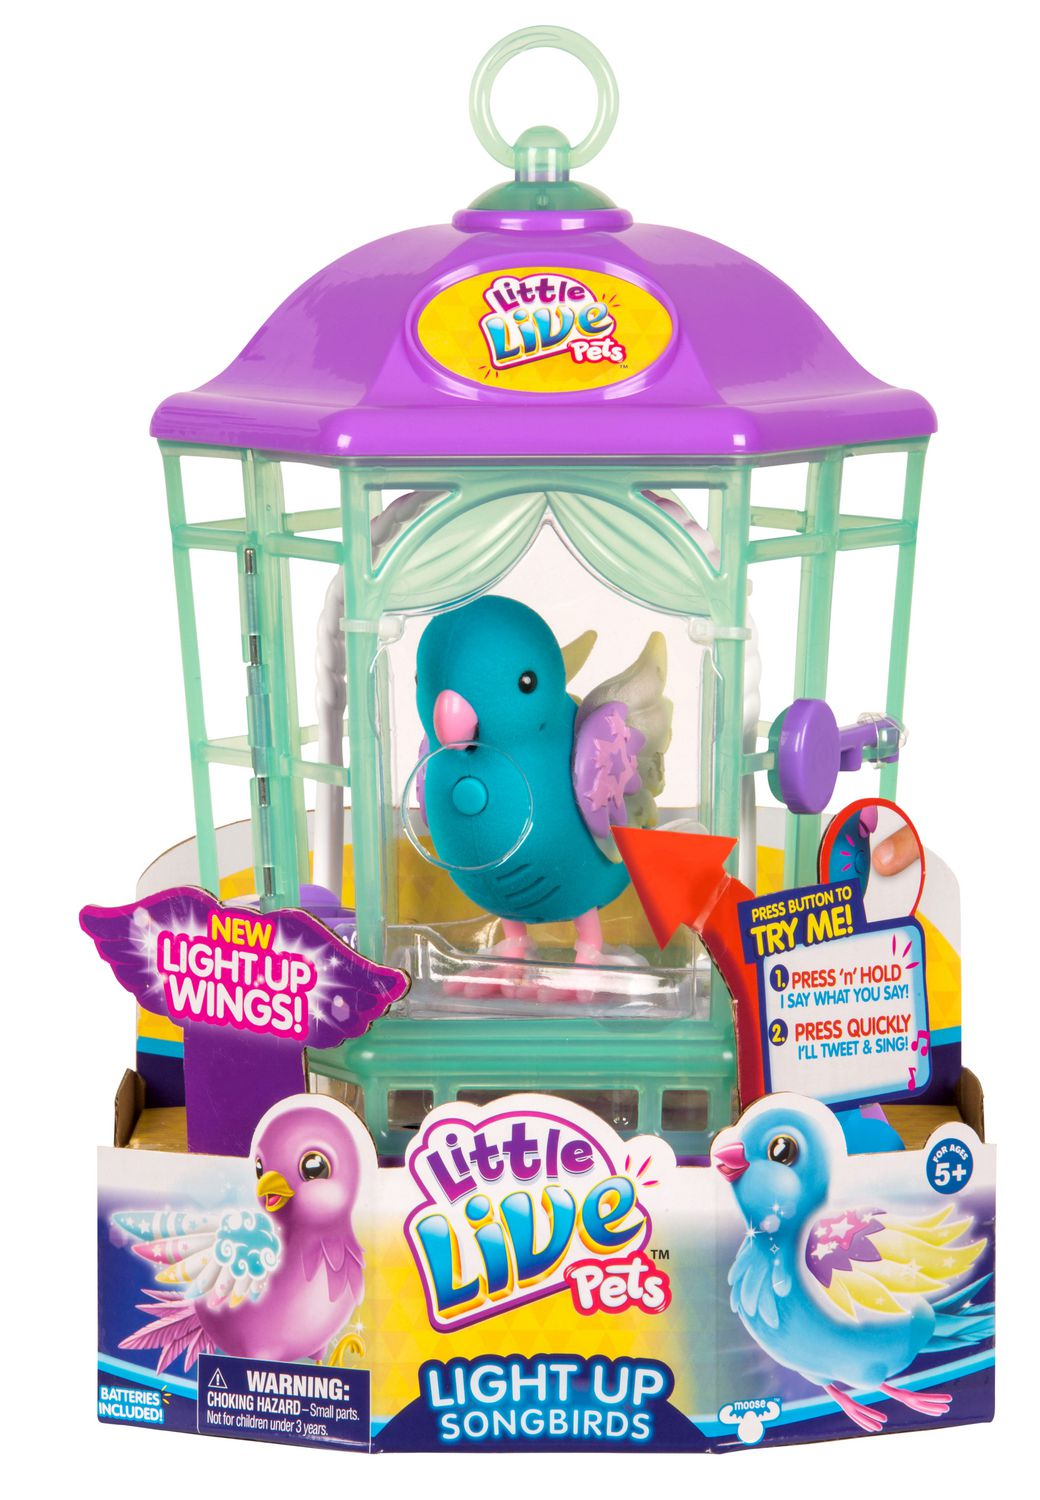 Purple and green plastic cage with blue toy bird inside, made by Little Live Pets